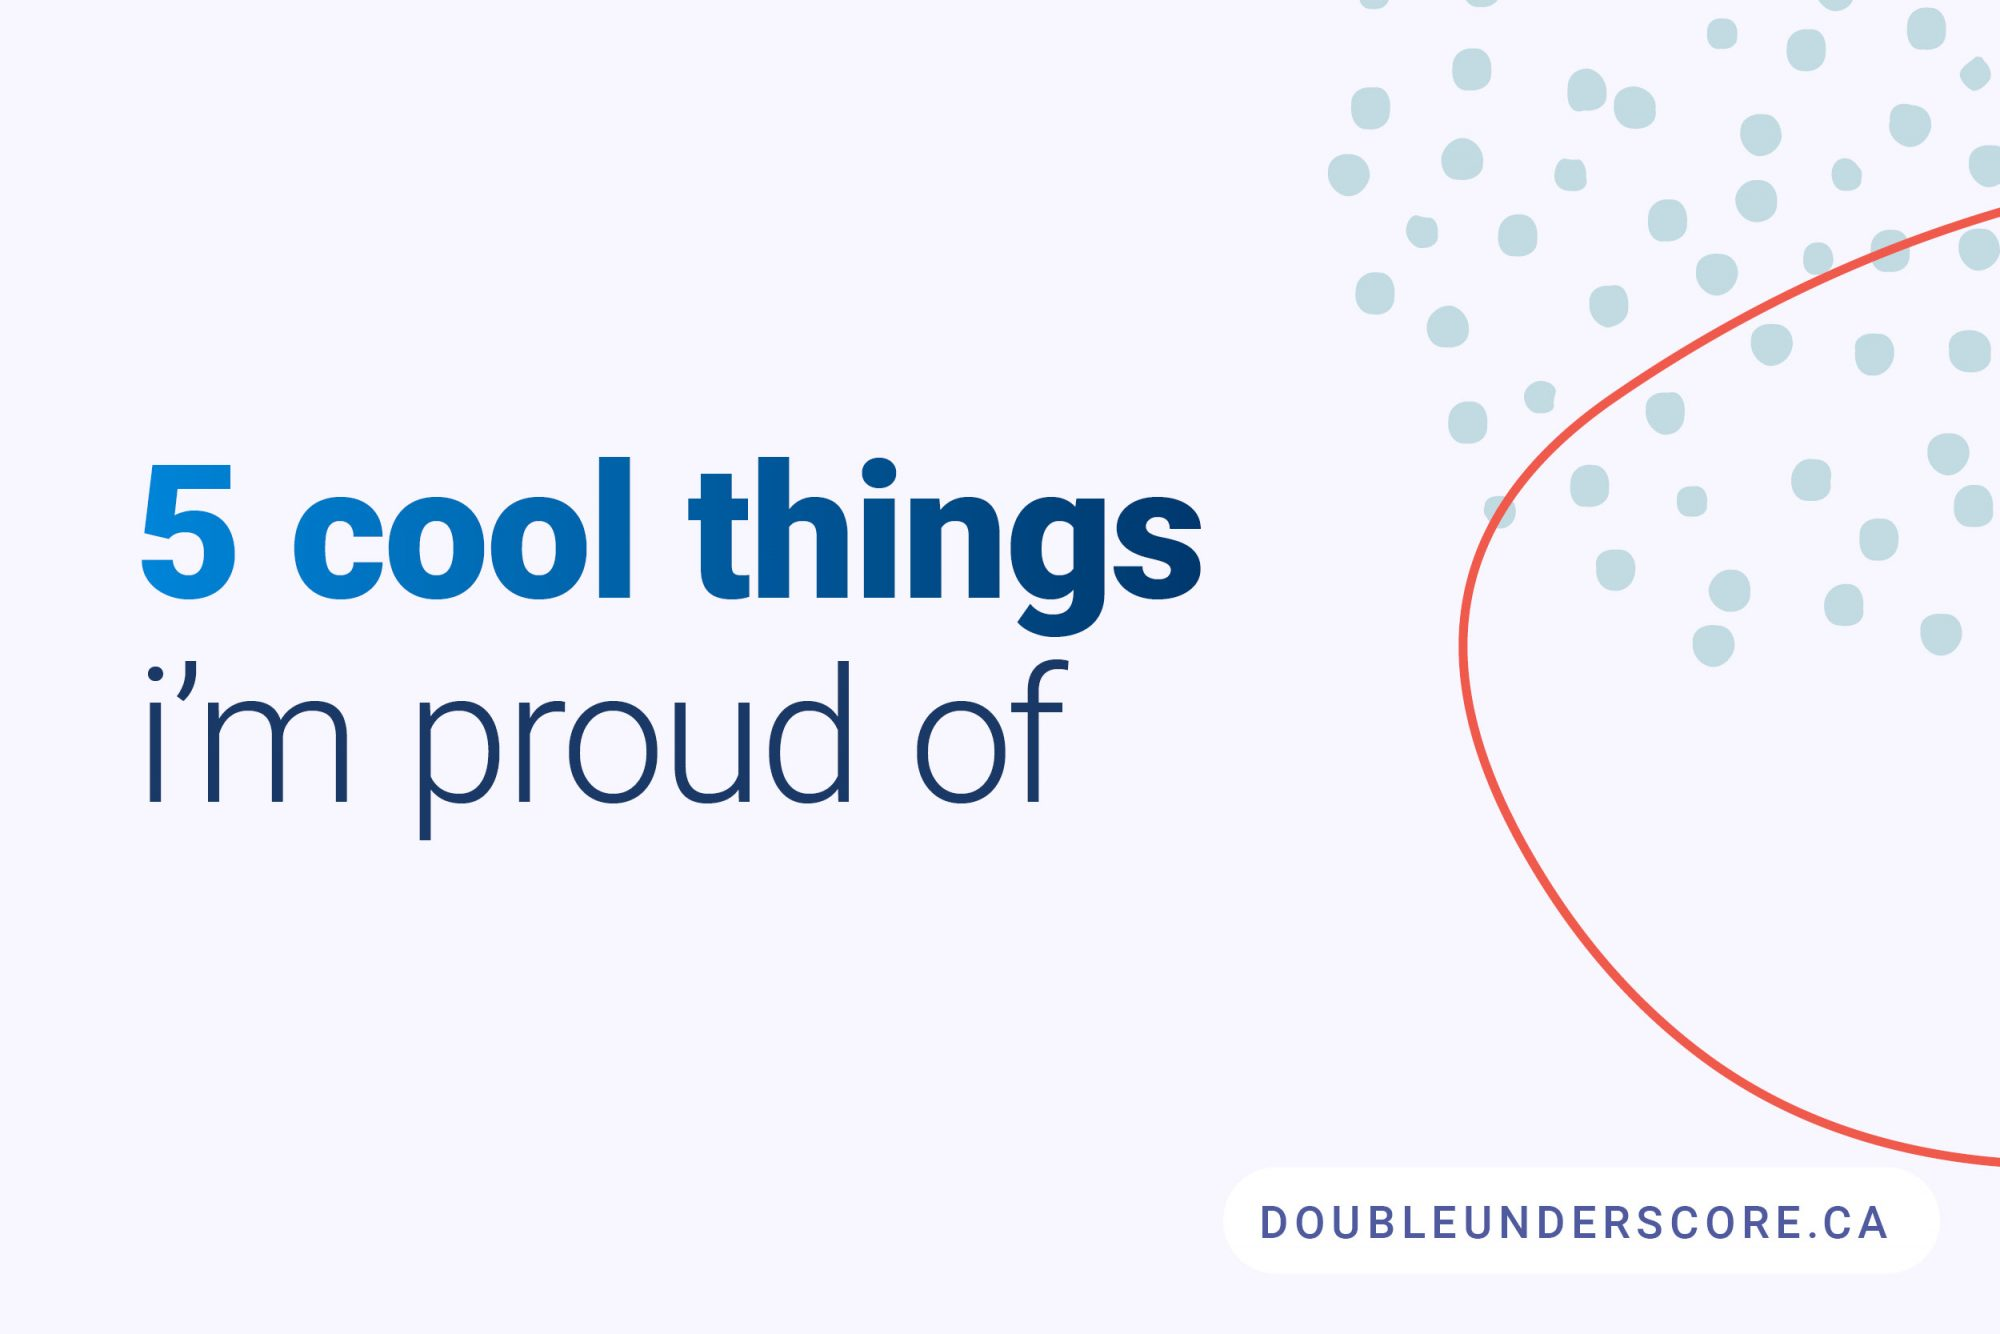 5 Cool Things Im Proud of by DoubleUnderscore